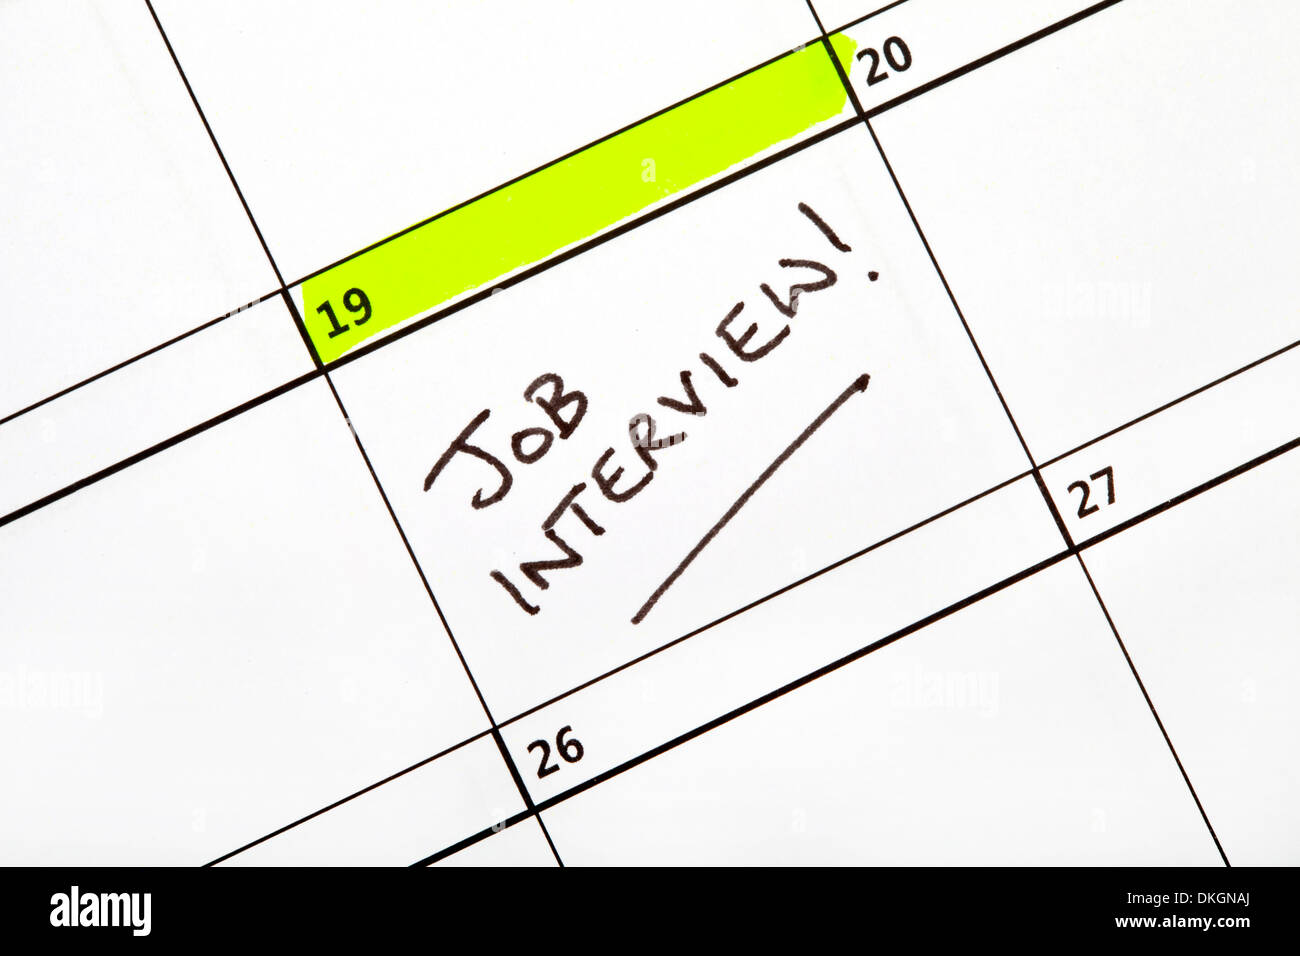 Date for a Job Interview written on a Calendar. - Stock Image